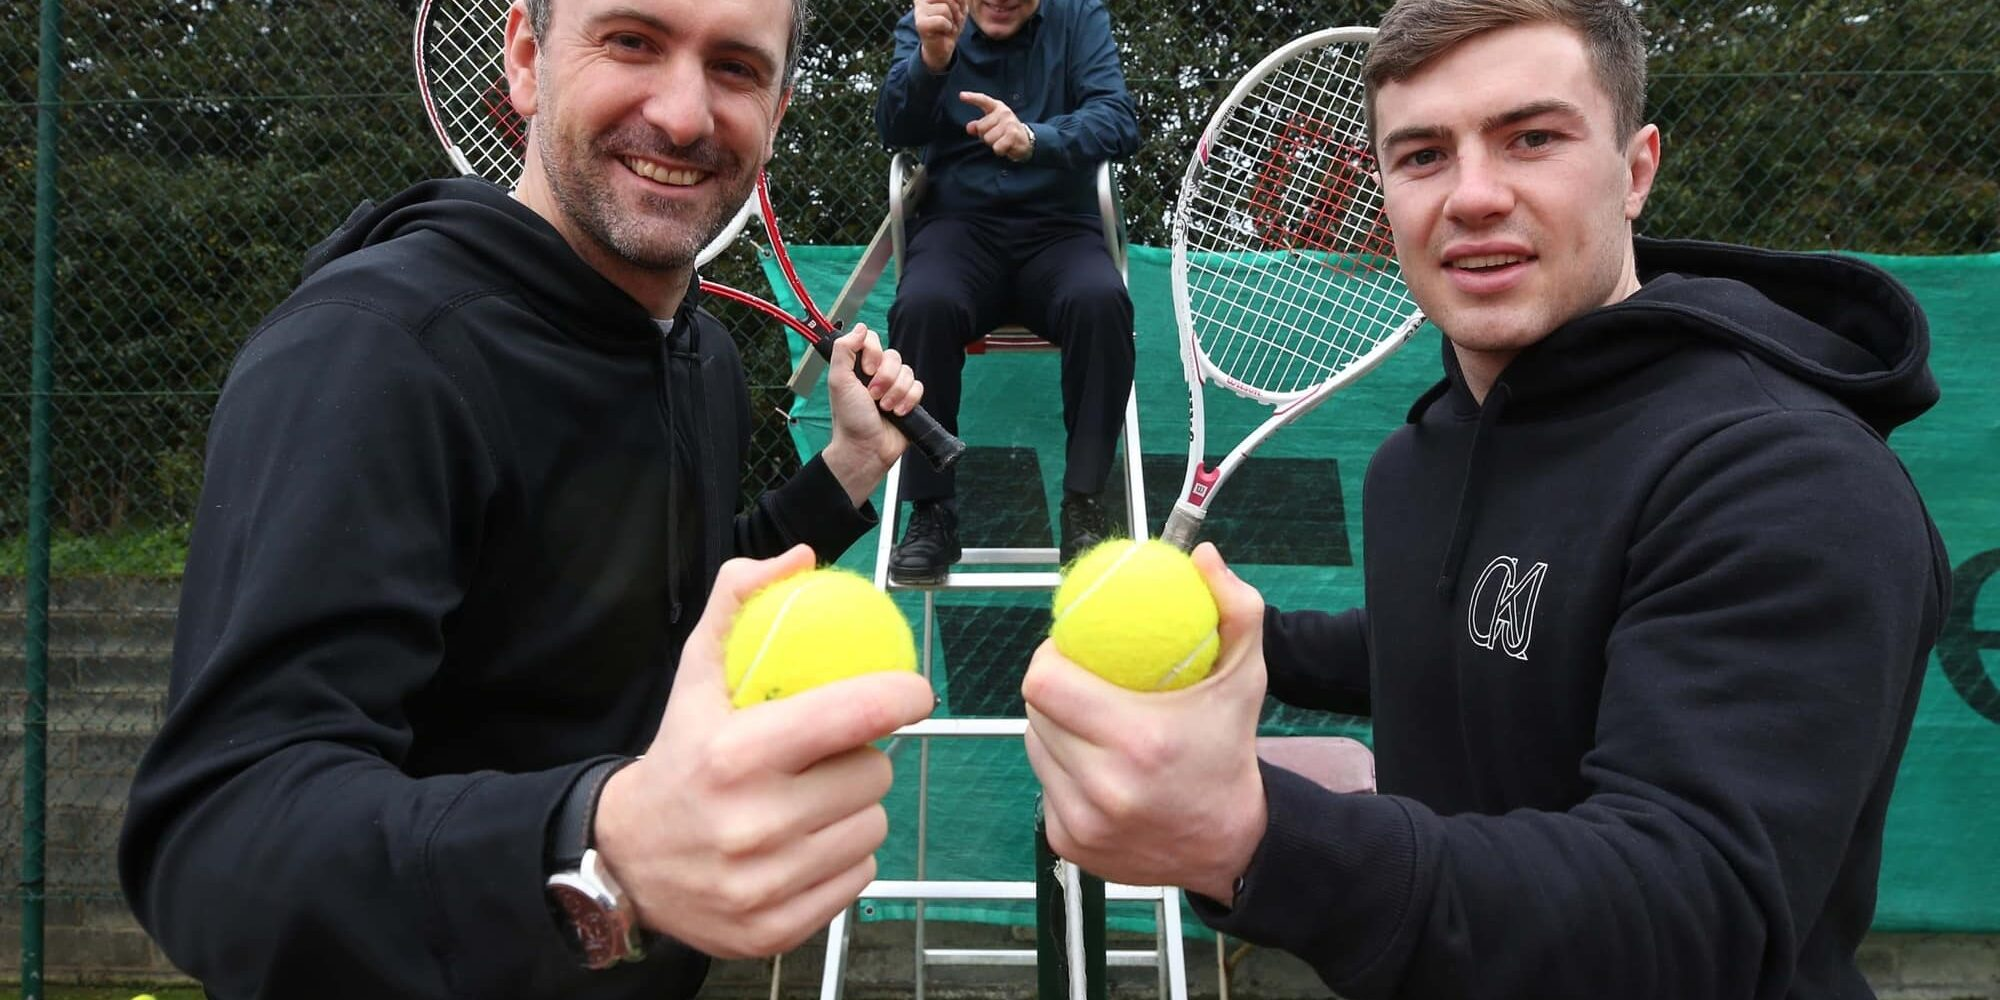 tennis-4cancer-fundraising-campaign-launch-10